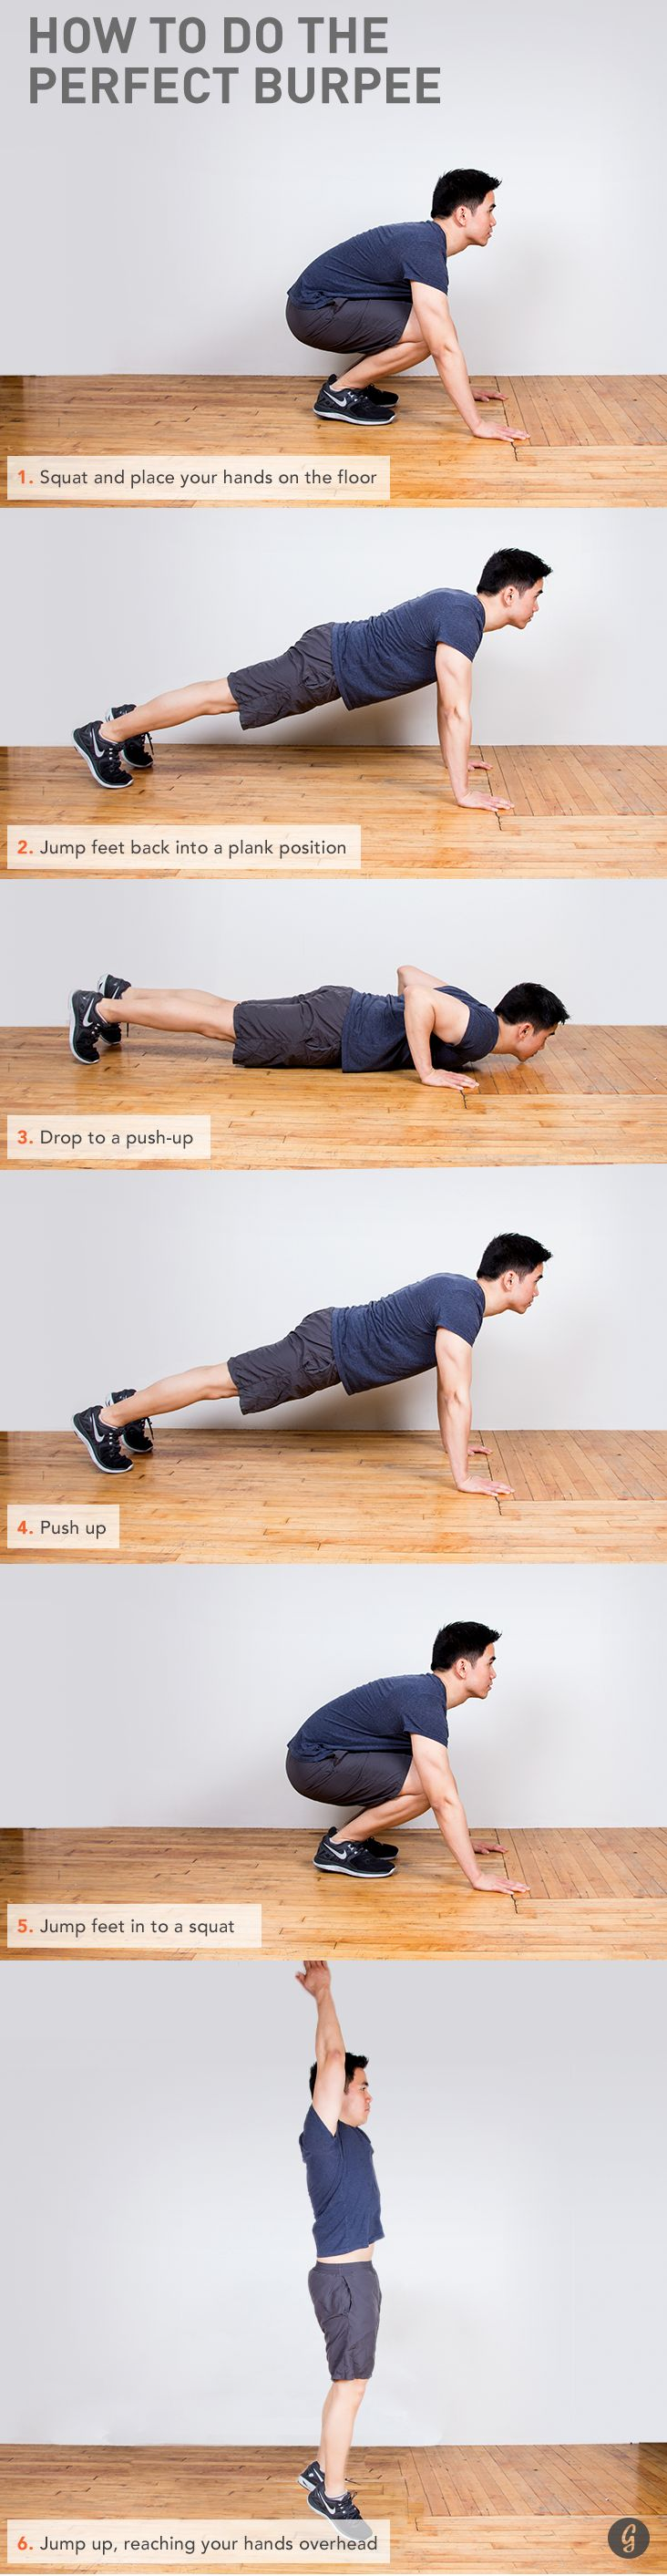 Everyone loves to hate 'em, but once you learn these tips, you may actually love this ultimate... #burpee #tips http://greatist.com/fitness/how-to-do-the-perfect-burpee